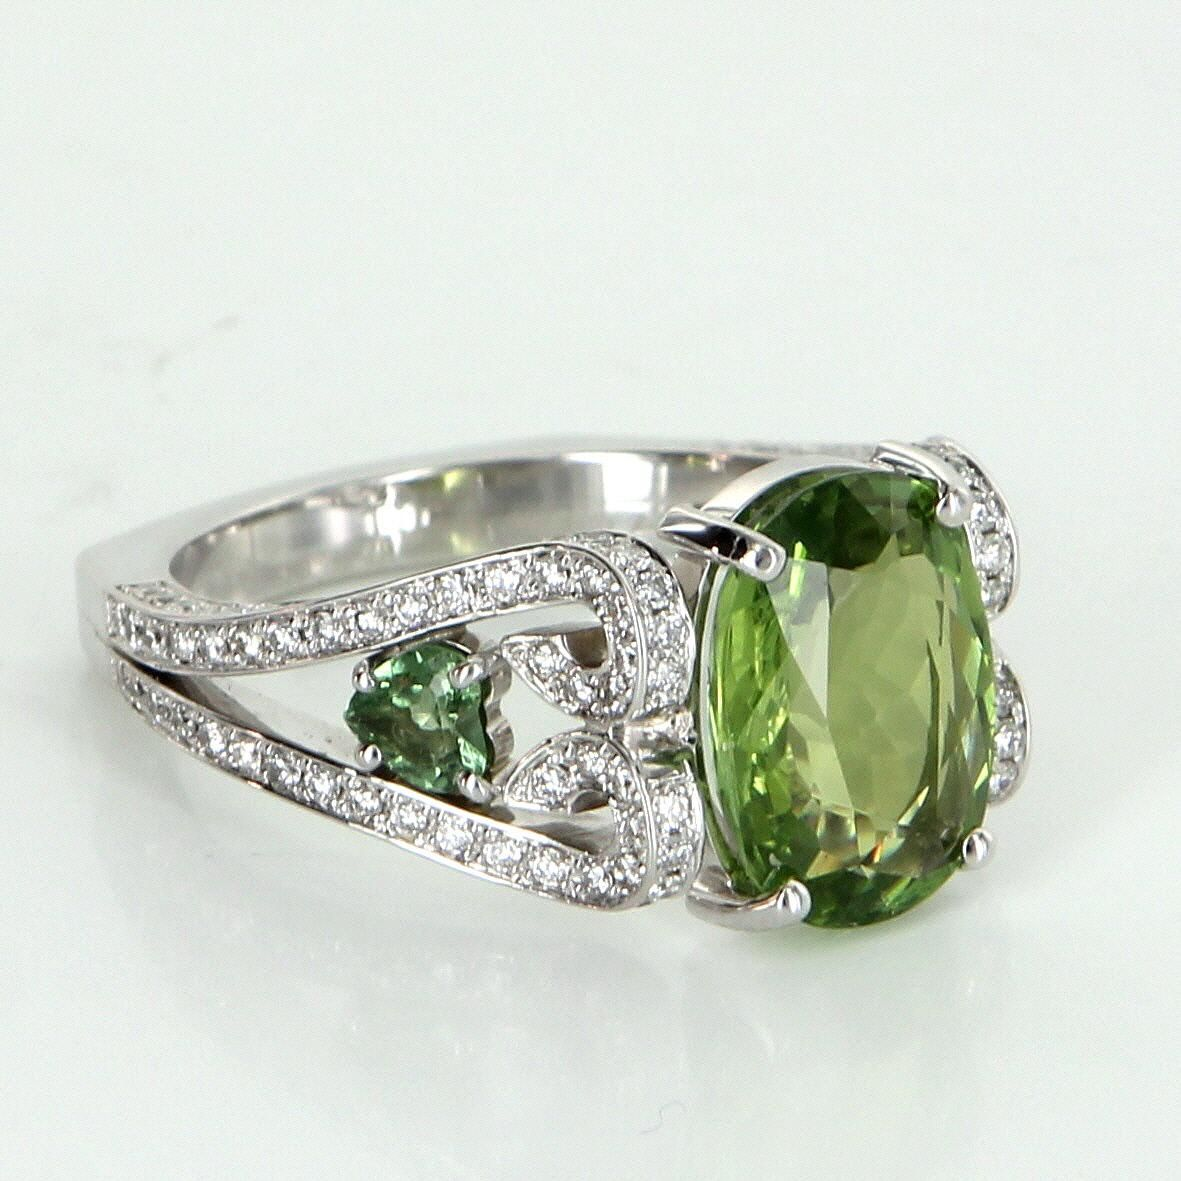 rings august for elegant peridot of wedding birthstone best